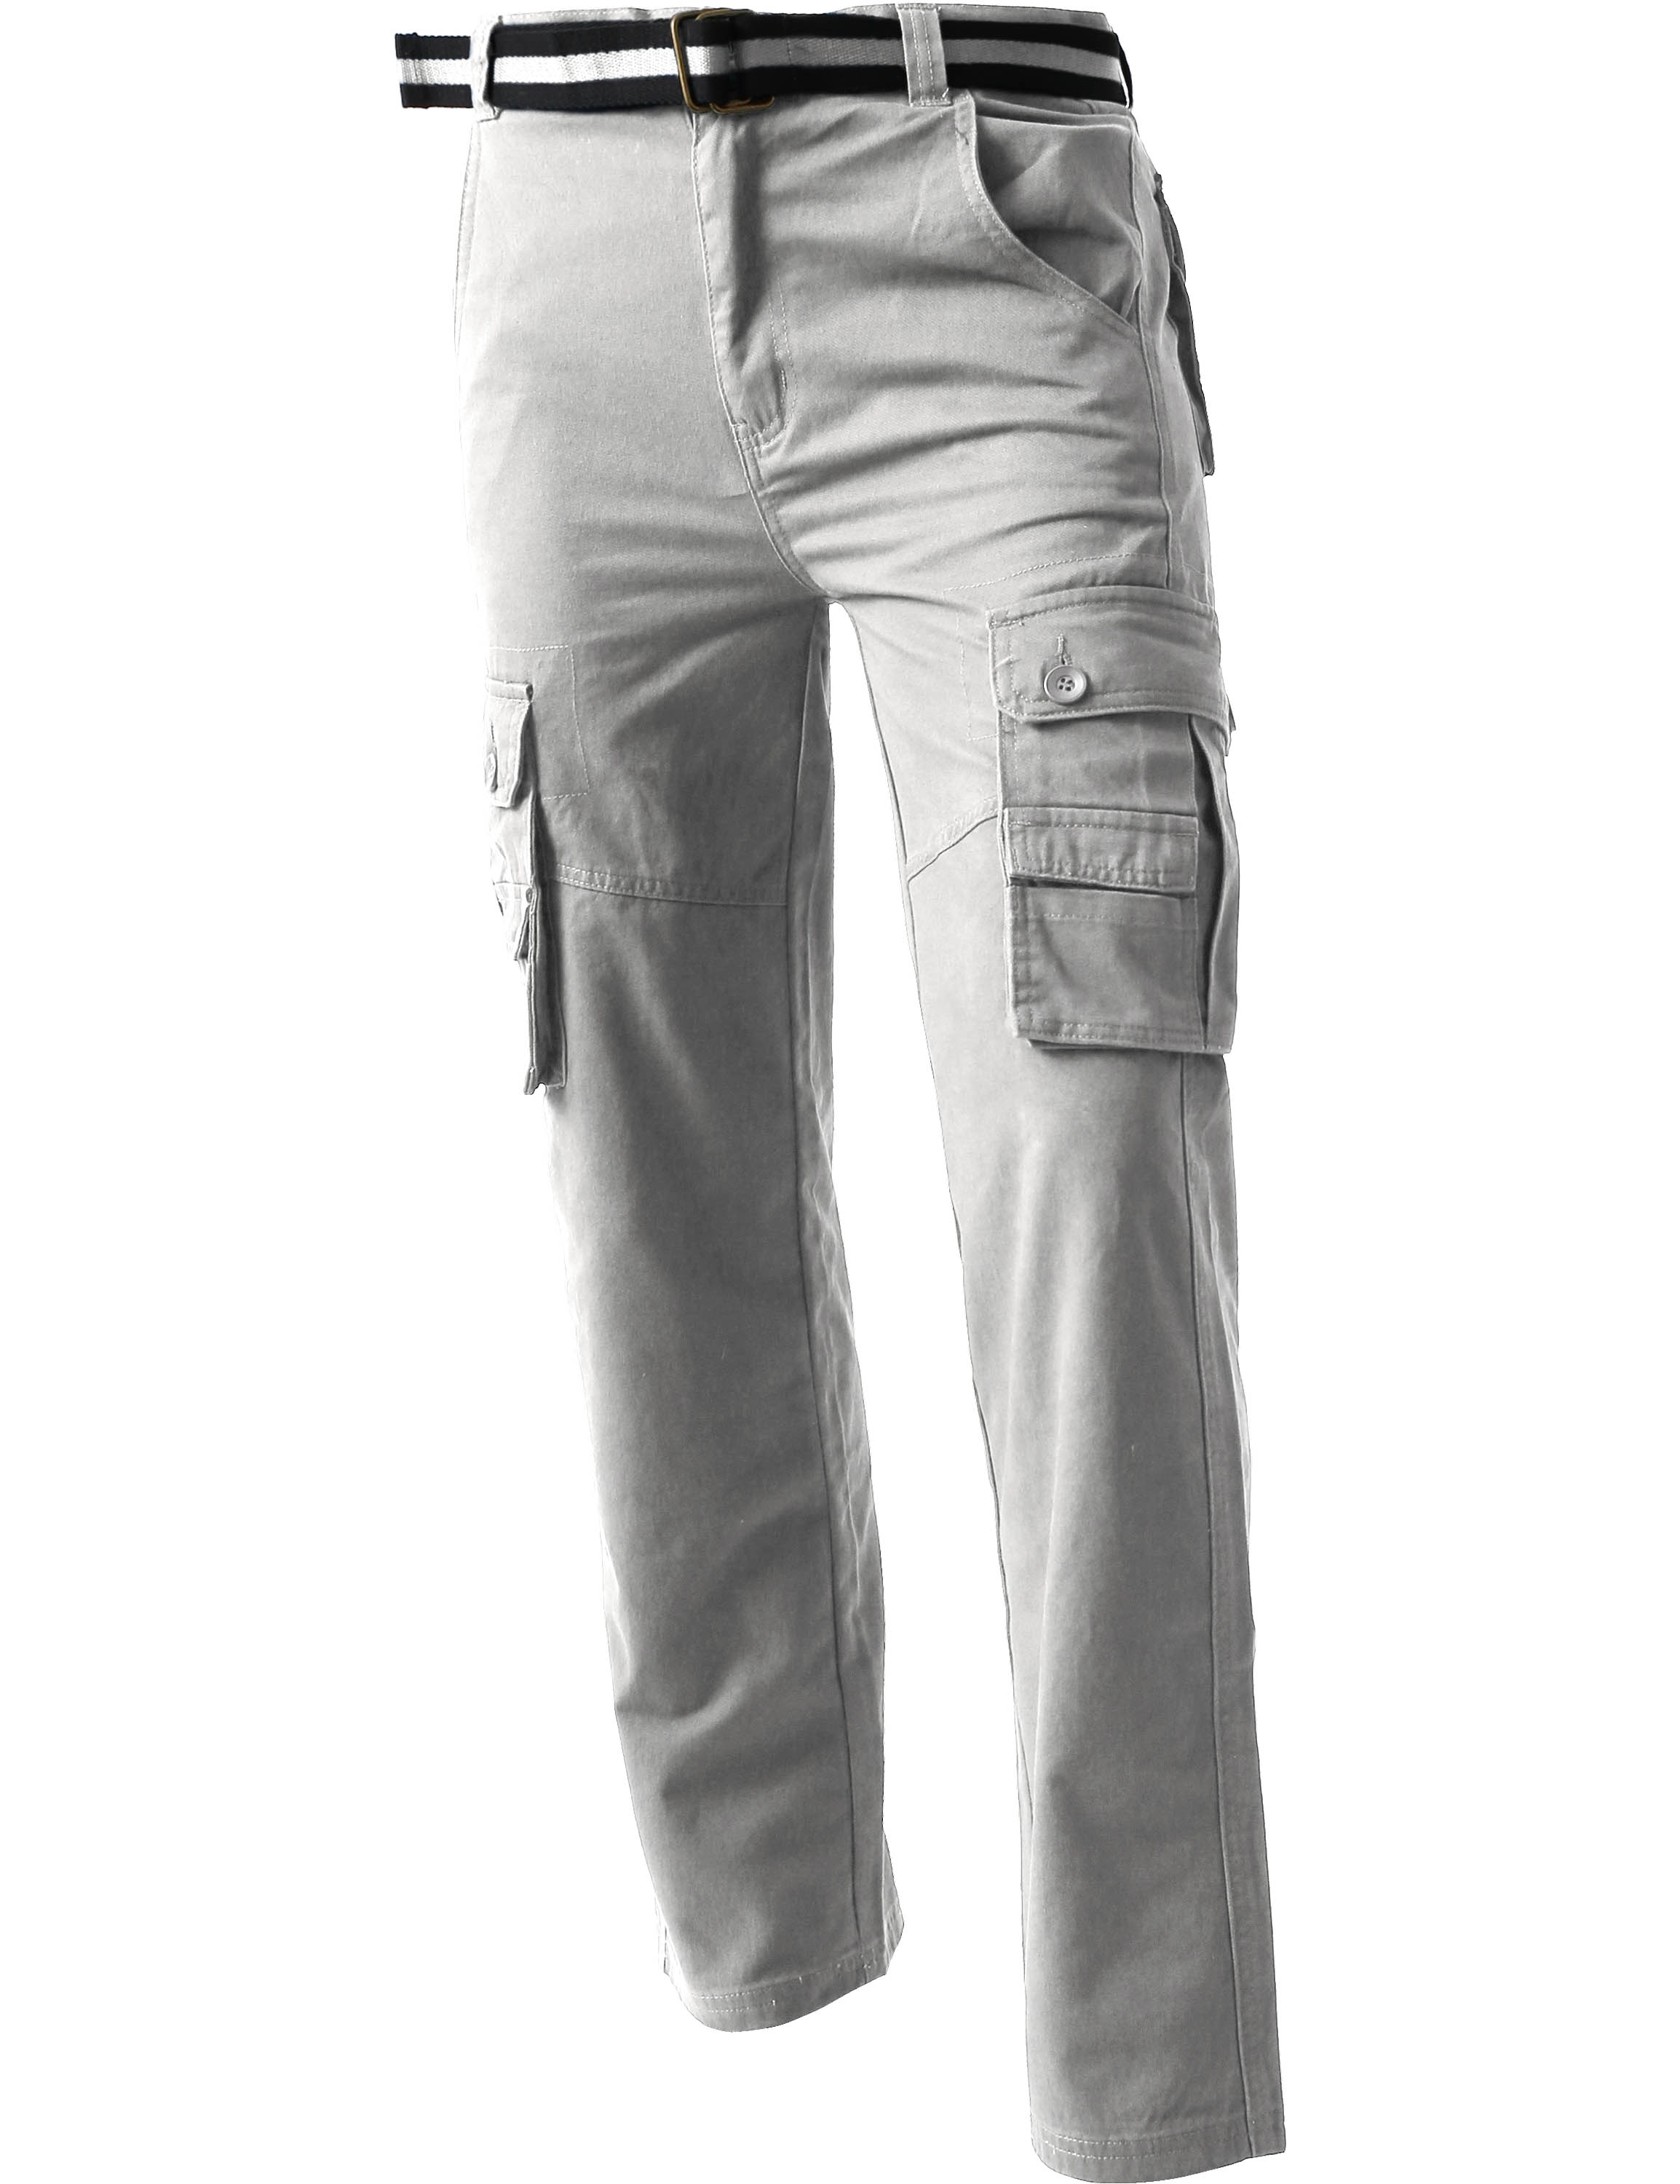 Mens CARGO PANTS with Utility Belt Lightweight Relaxed Straight Fit Twill Cotton Work Outdoor Tactical